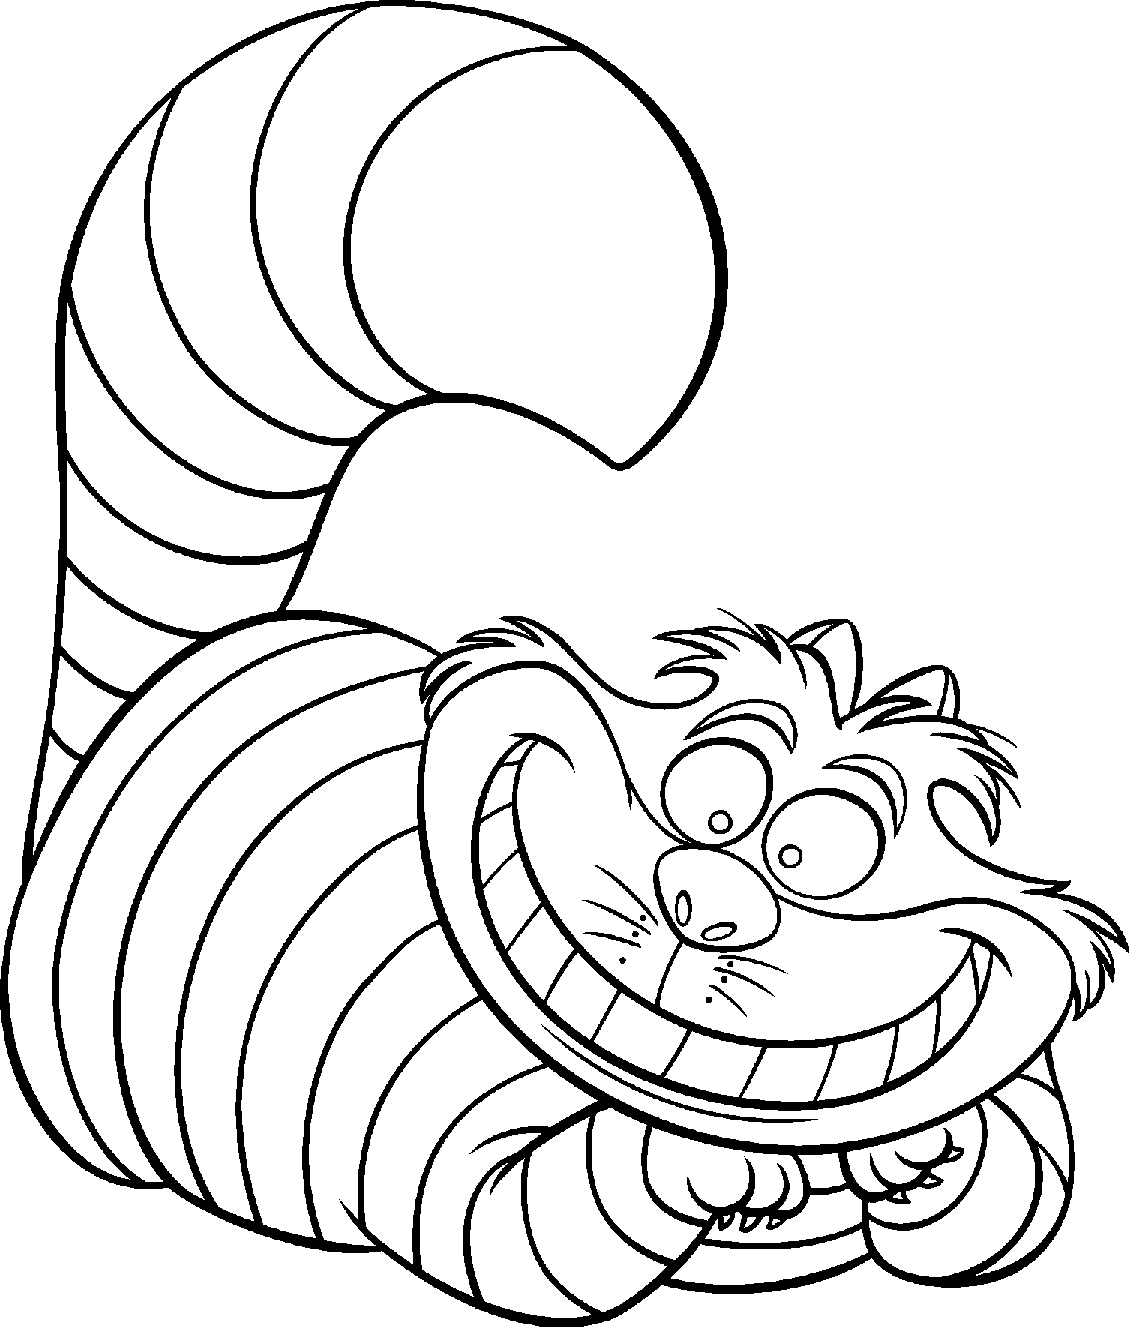 colouring pages alice in wonderland free printable alice in wonderland coloring pages wonderland in colouring pages alice